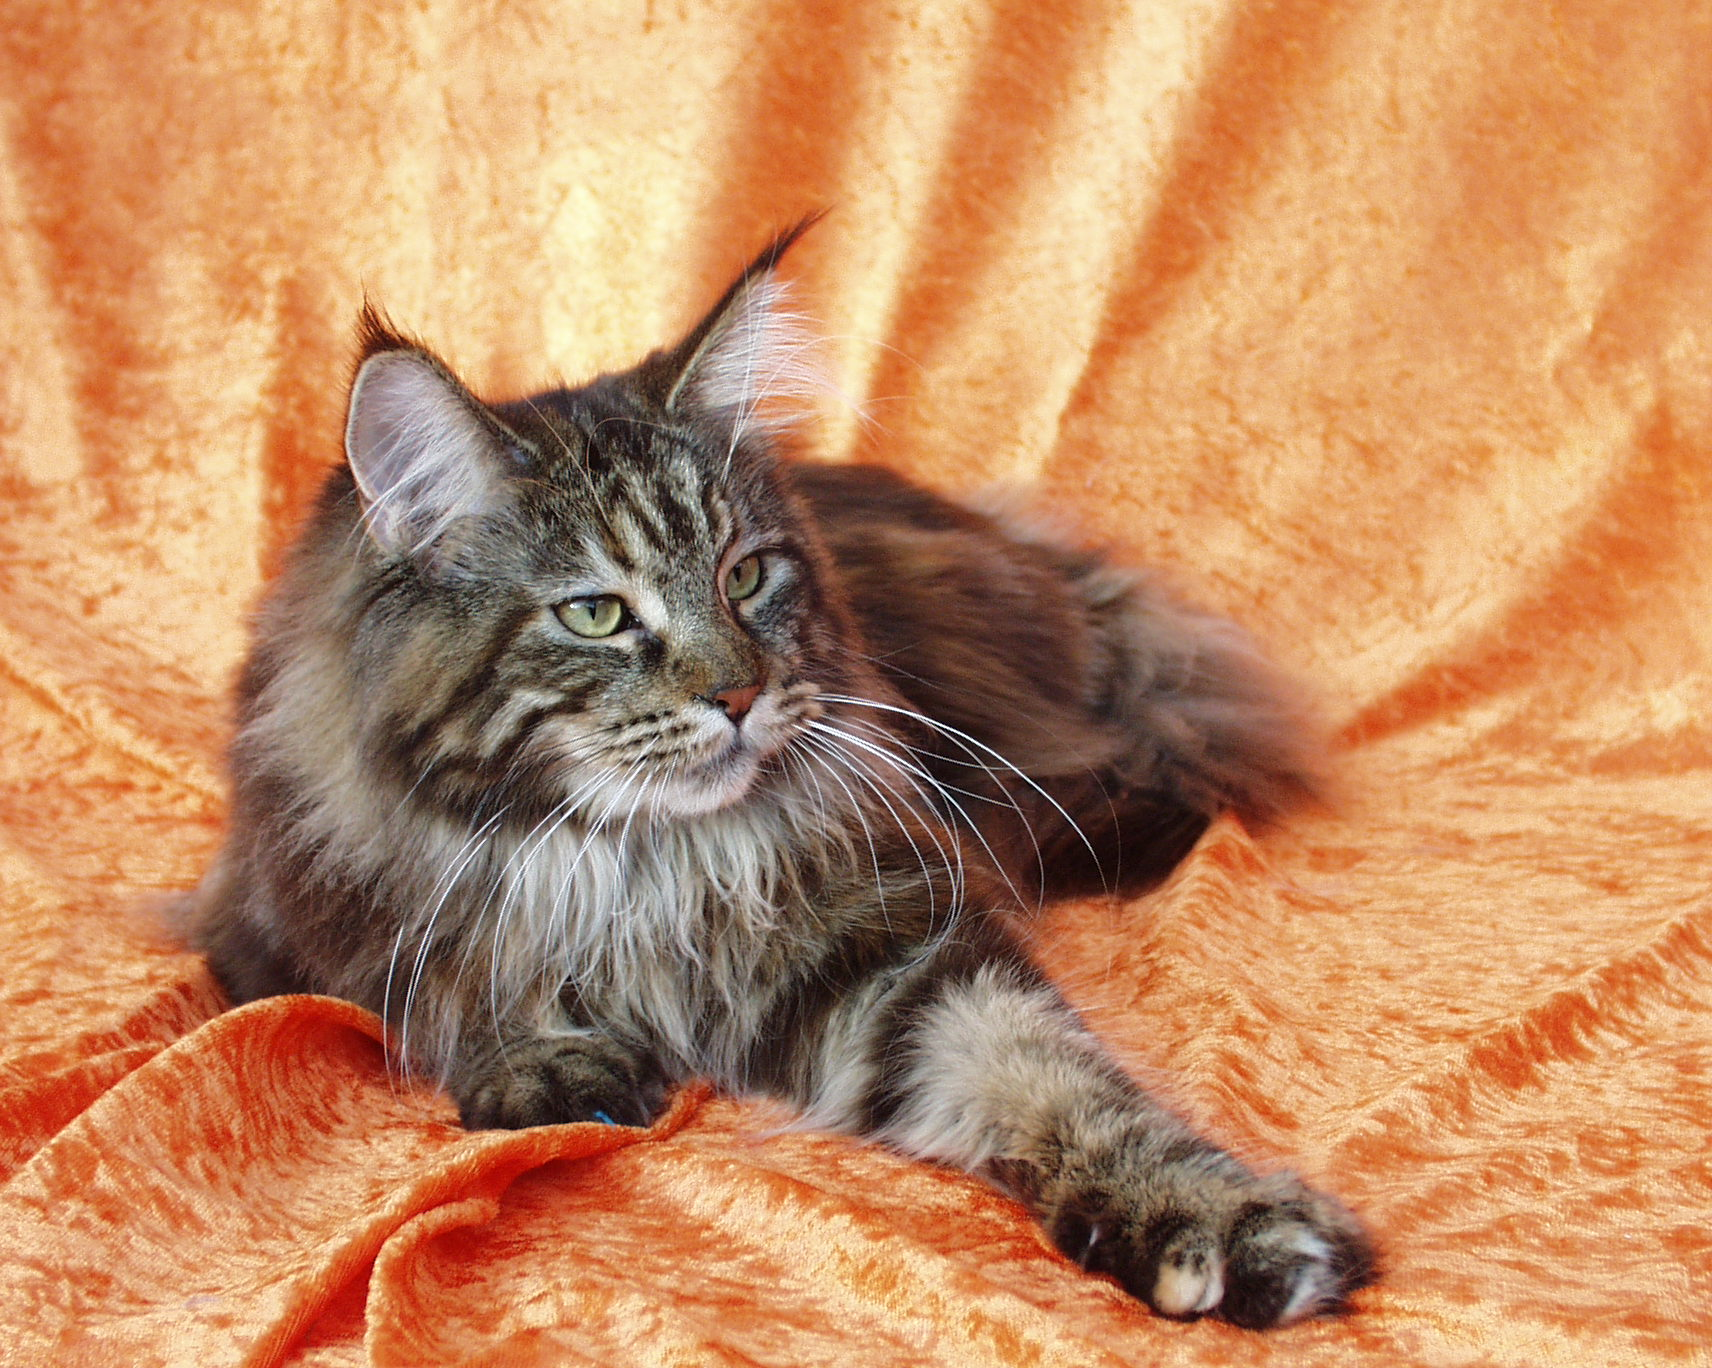 How To Tell If Your Cat Is A Maine Coon Purebred Or Mix?